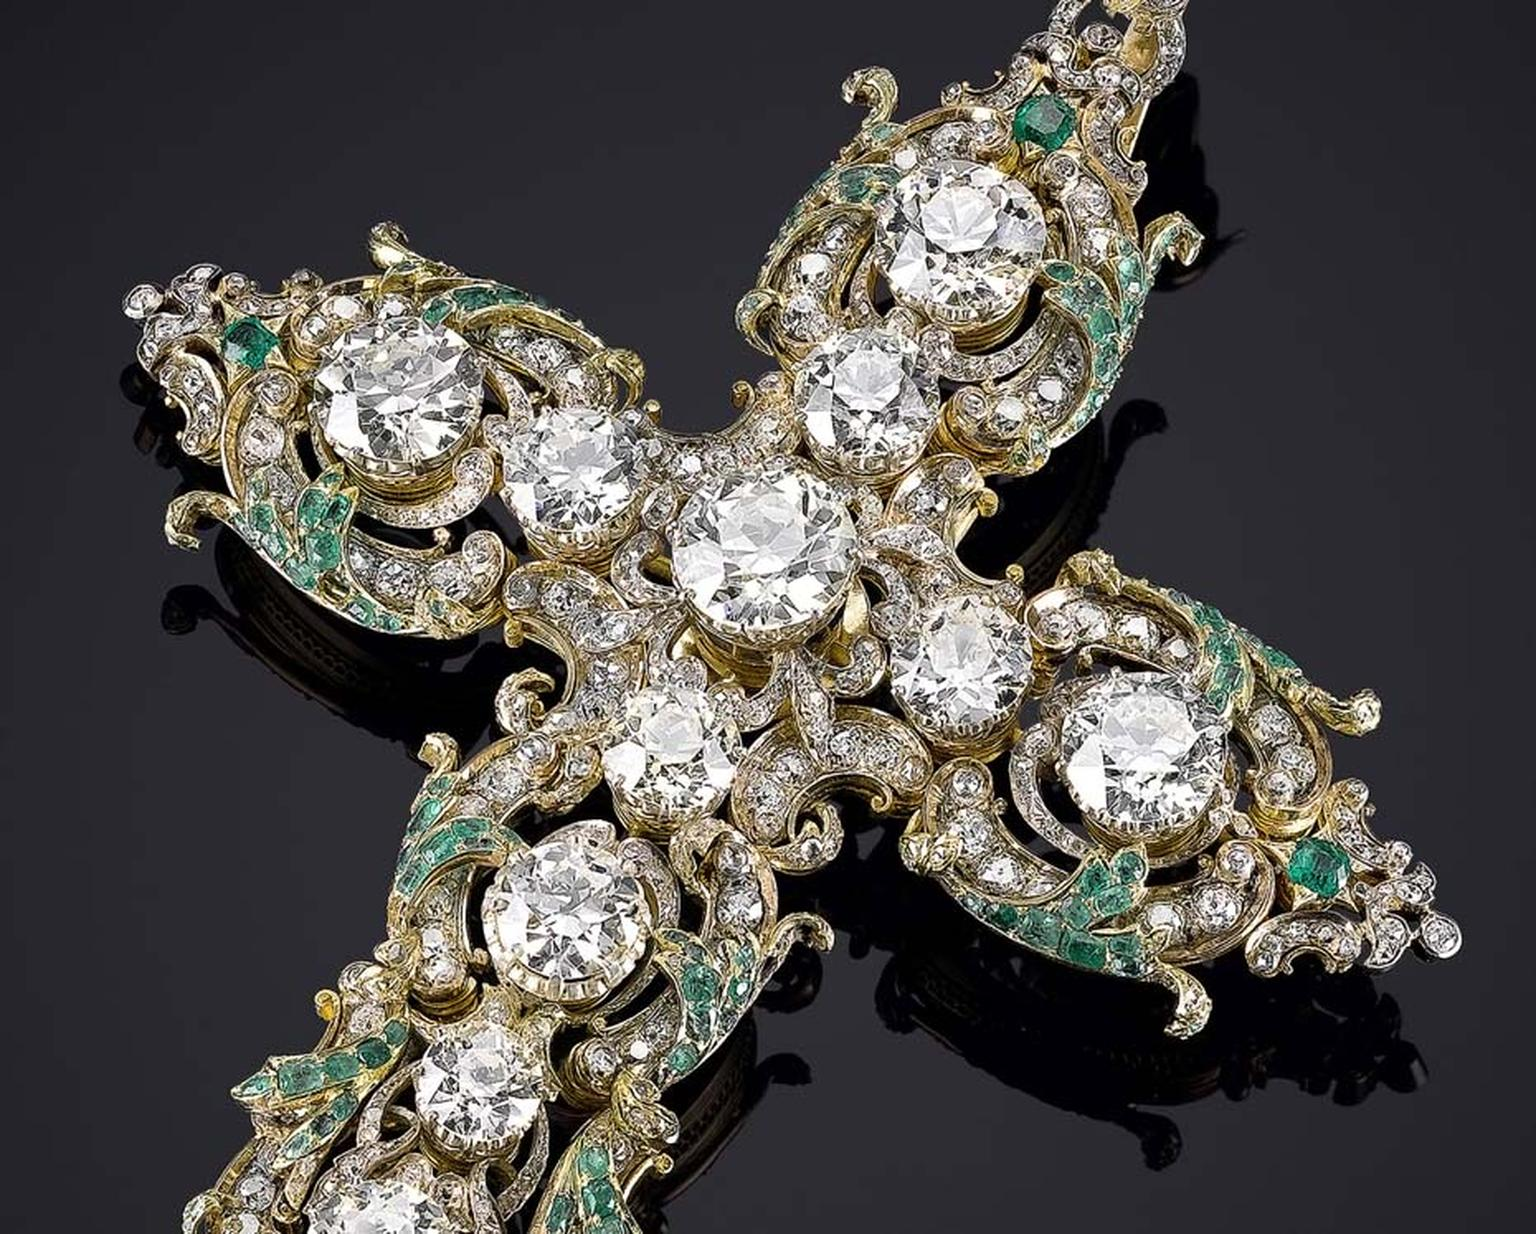 Valued at US$1.25 million, Pope Paul VI's diamond cross is embellished with diamonds, emeralds and rubies